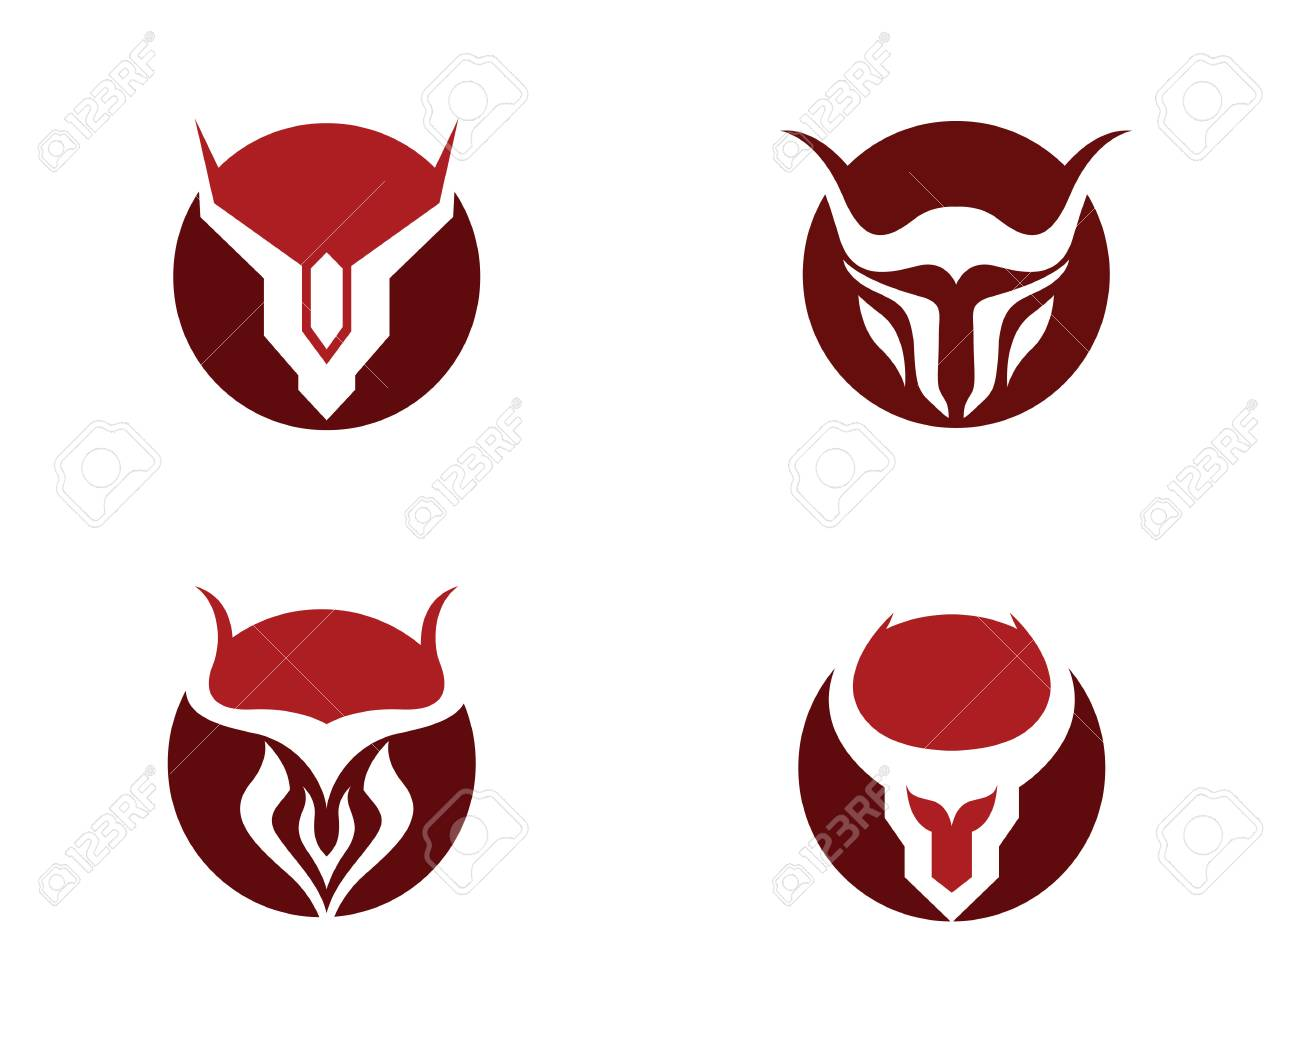 taurus logo template royalty free cliparts vectors and stock rh 123rf com taurus logo images taurus logo design